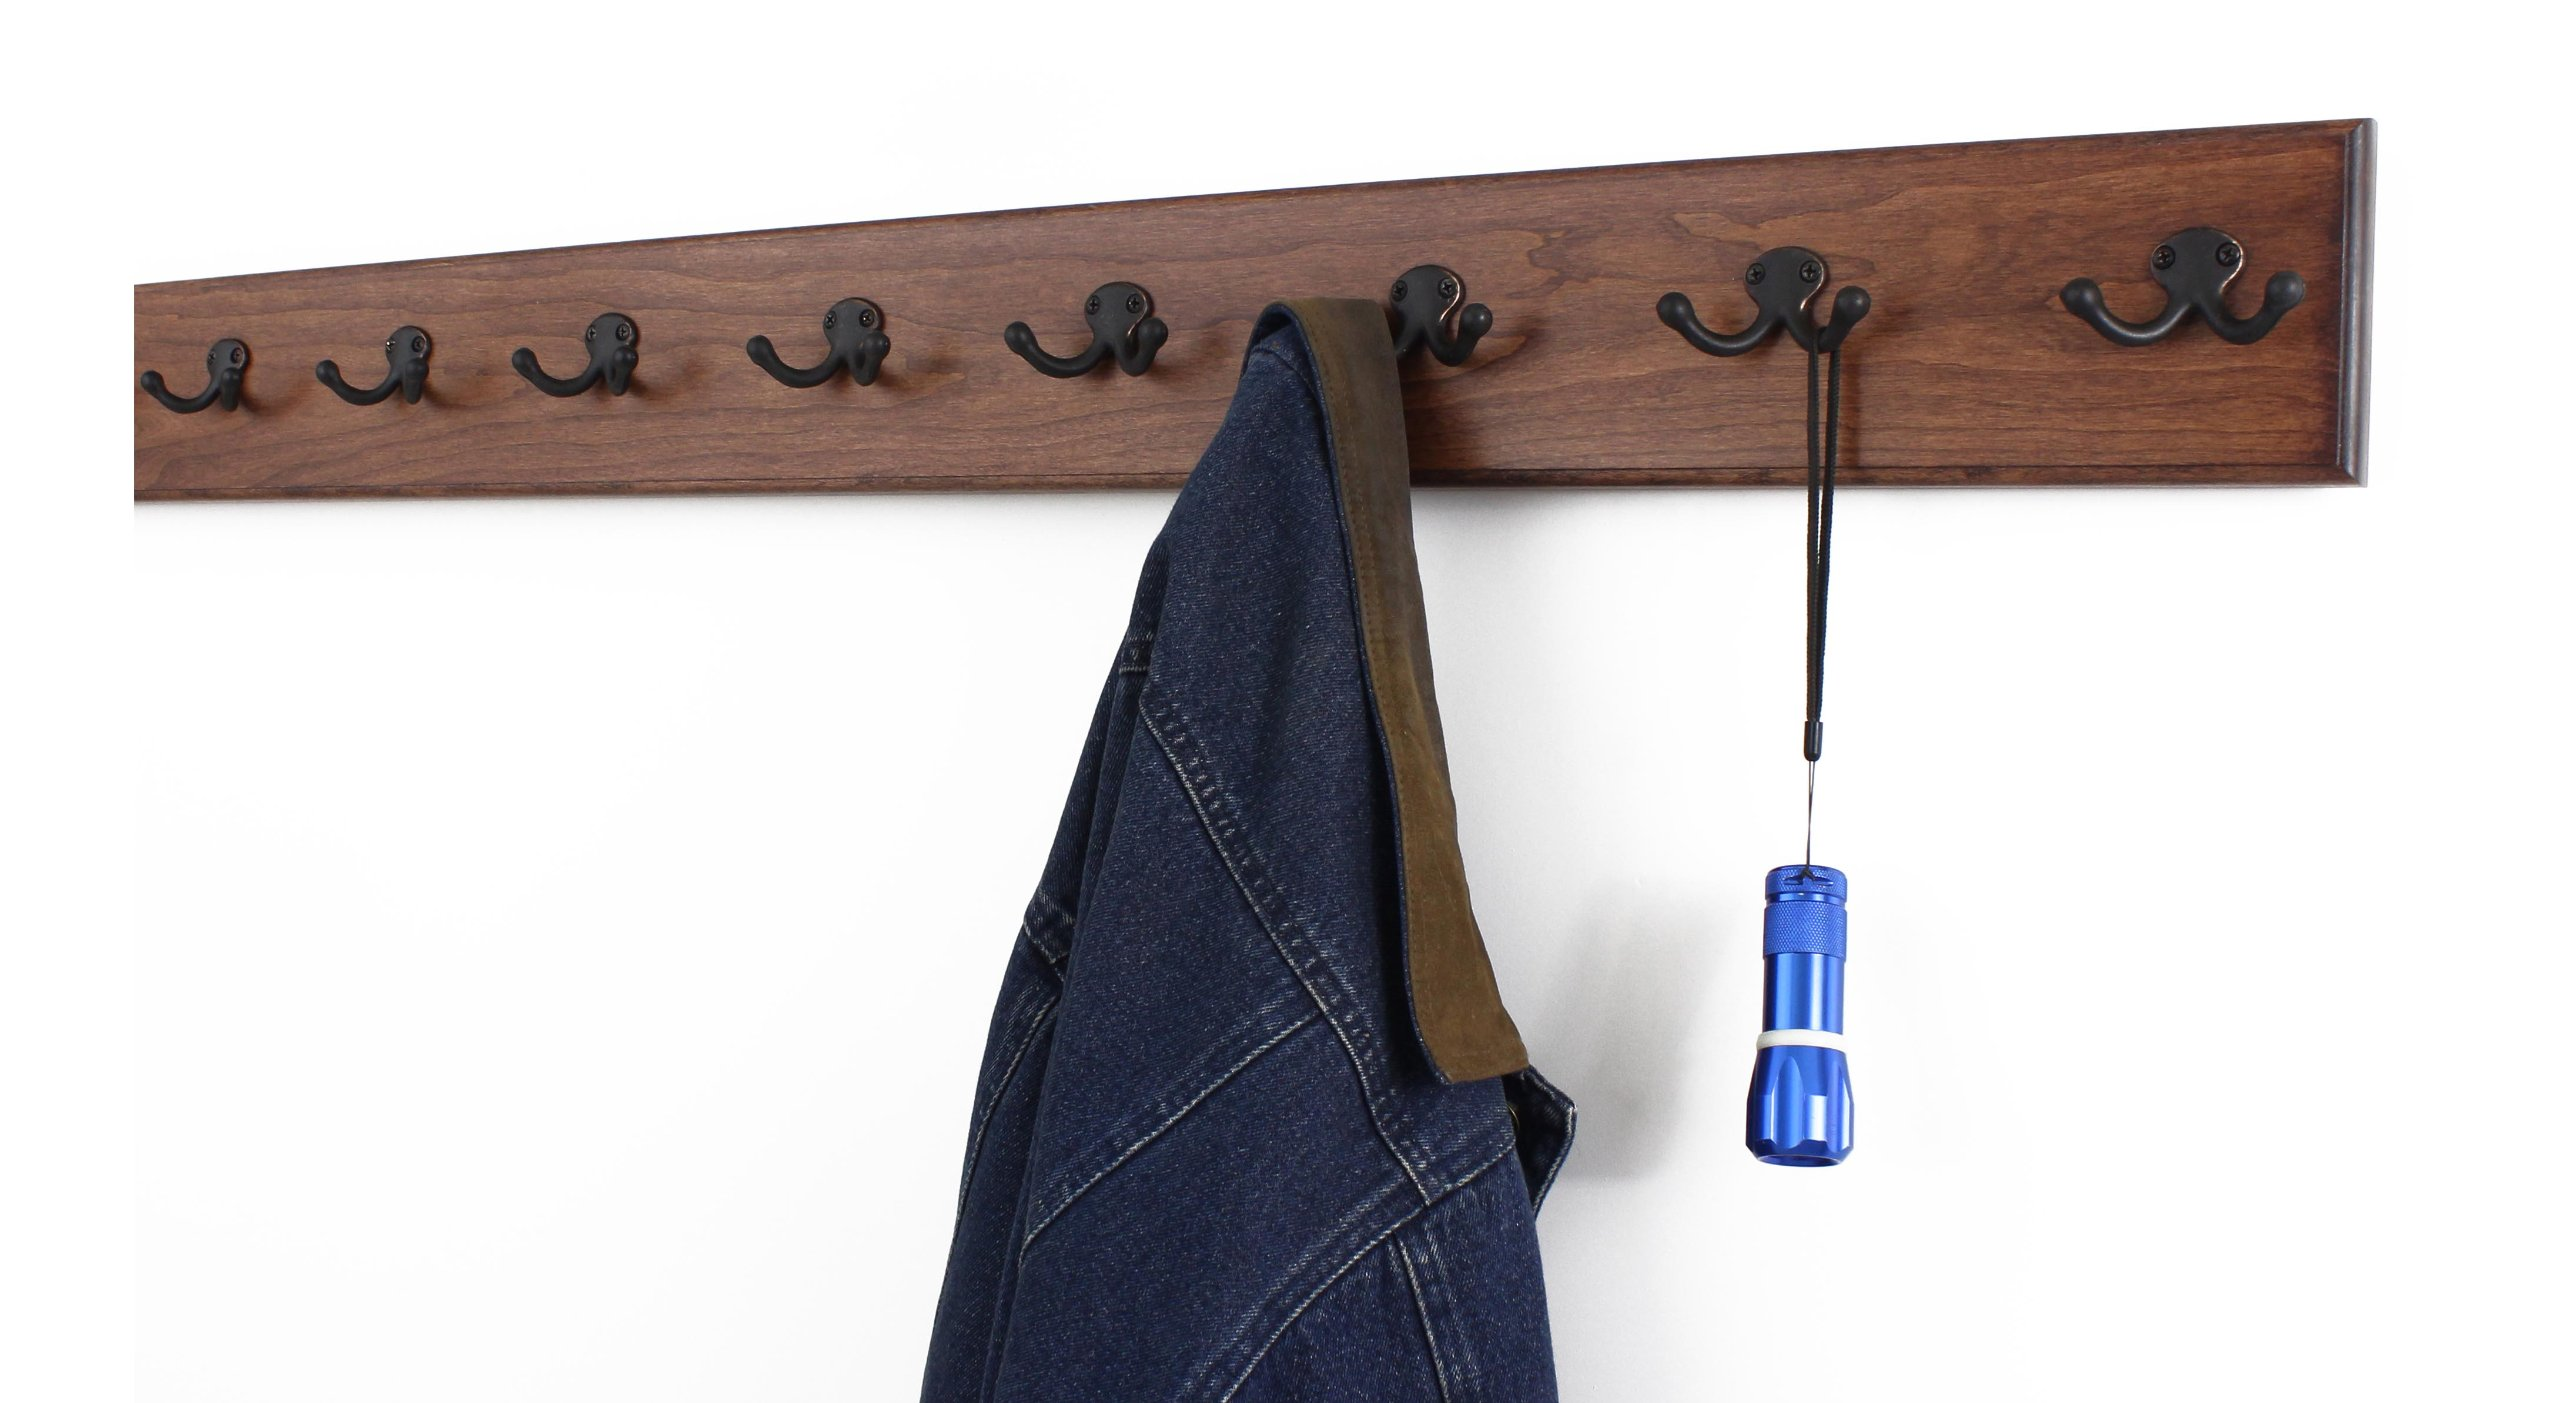 Solid Cherry Wall Mounted Coat Rack with Oil Rubbed Aged Bronze Coat Hooks - Double Style Wall Hooks - 4.5'' Utra Wide Rail – Made In the USA - (Mahogany Stain - 4.5'' x 41'' - 8 Hooks)